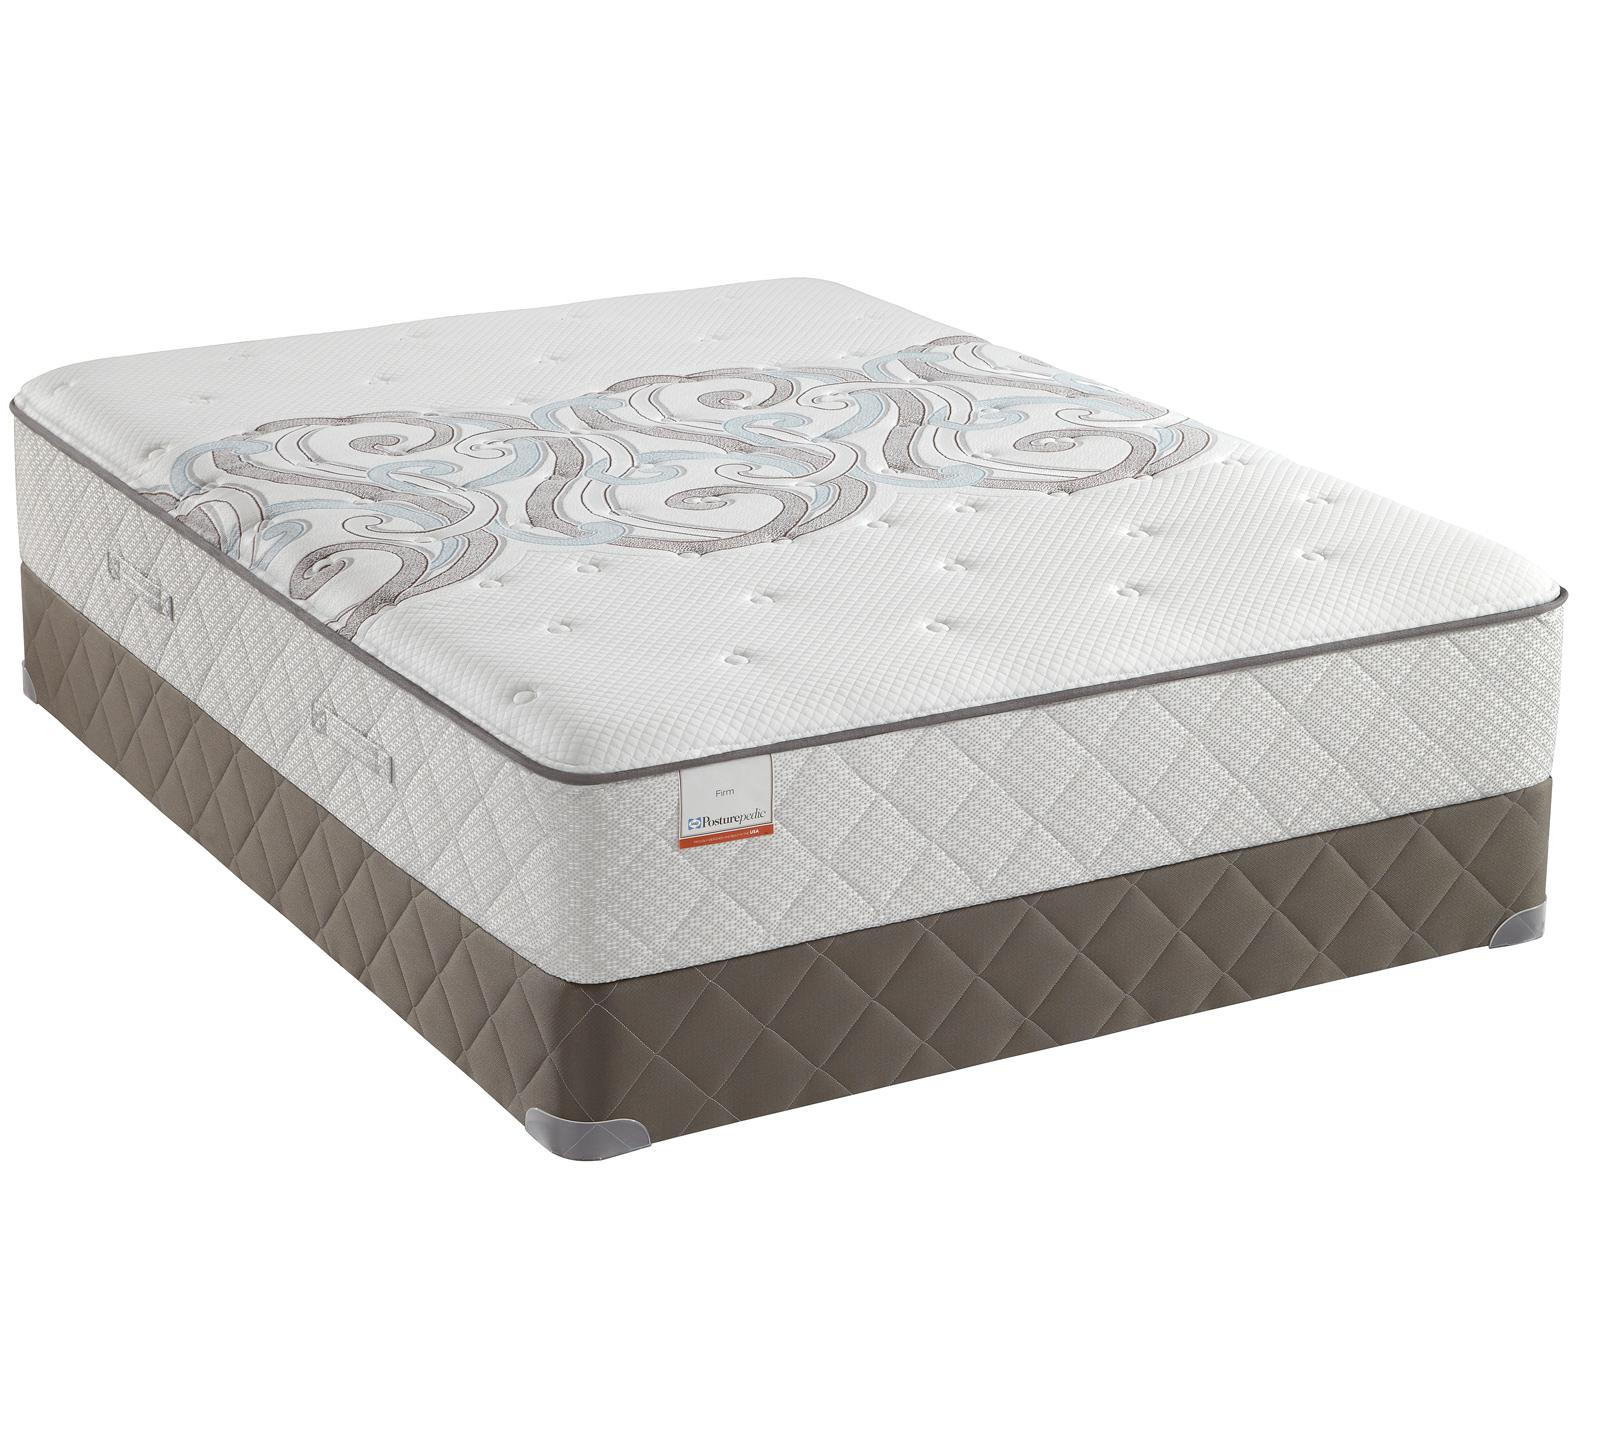 Sealy Posturepedic Port Cartier Luxury Firm Mattress